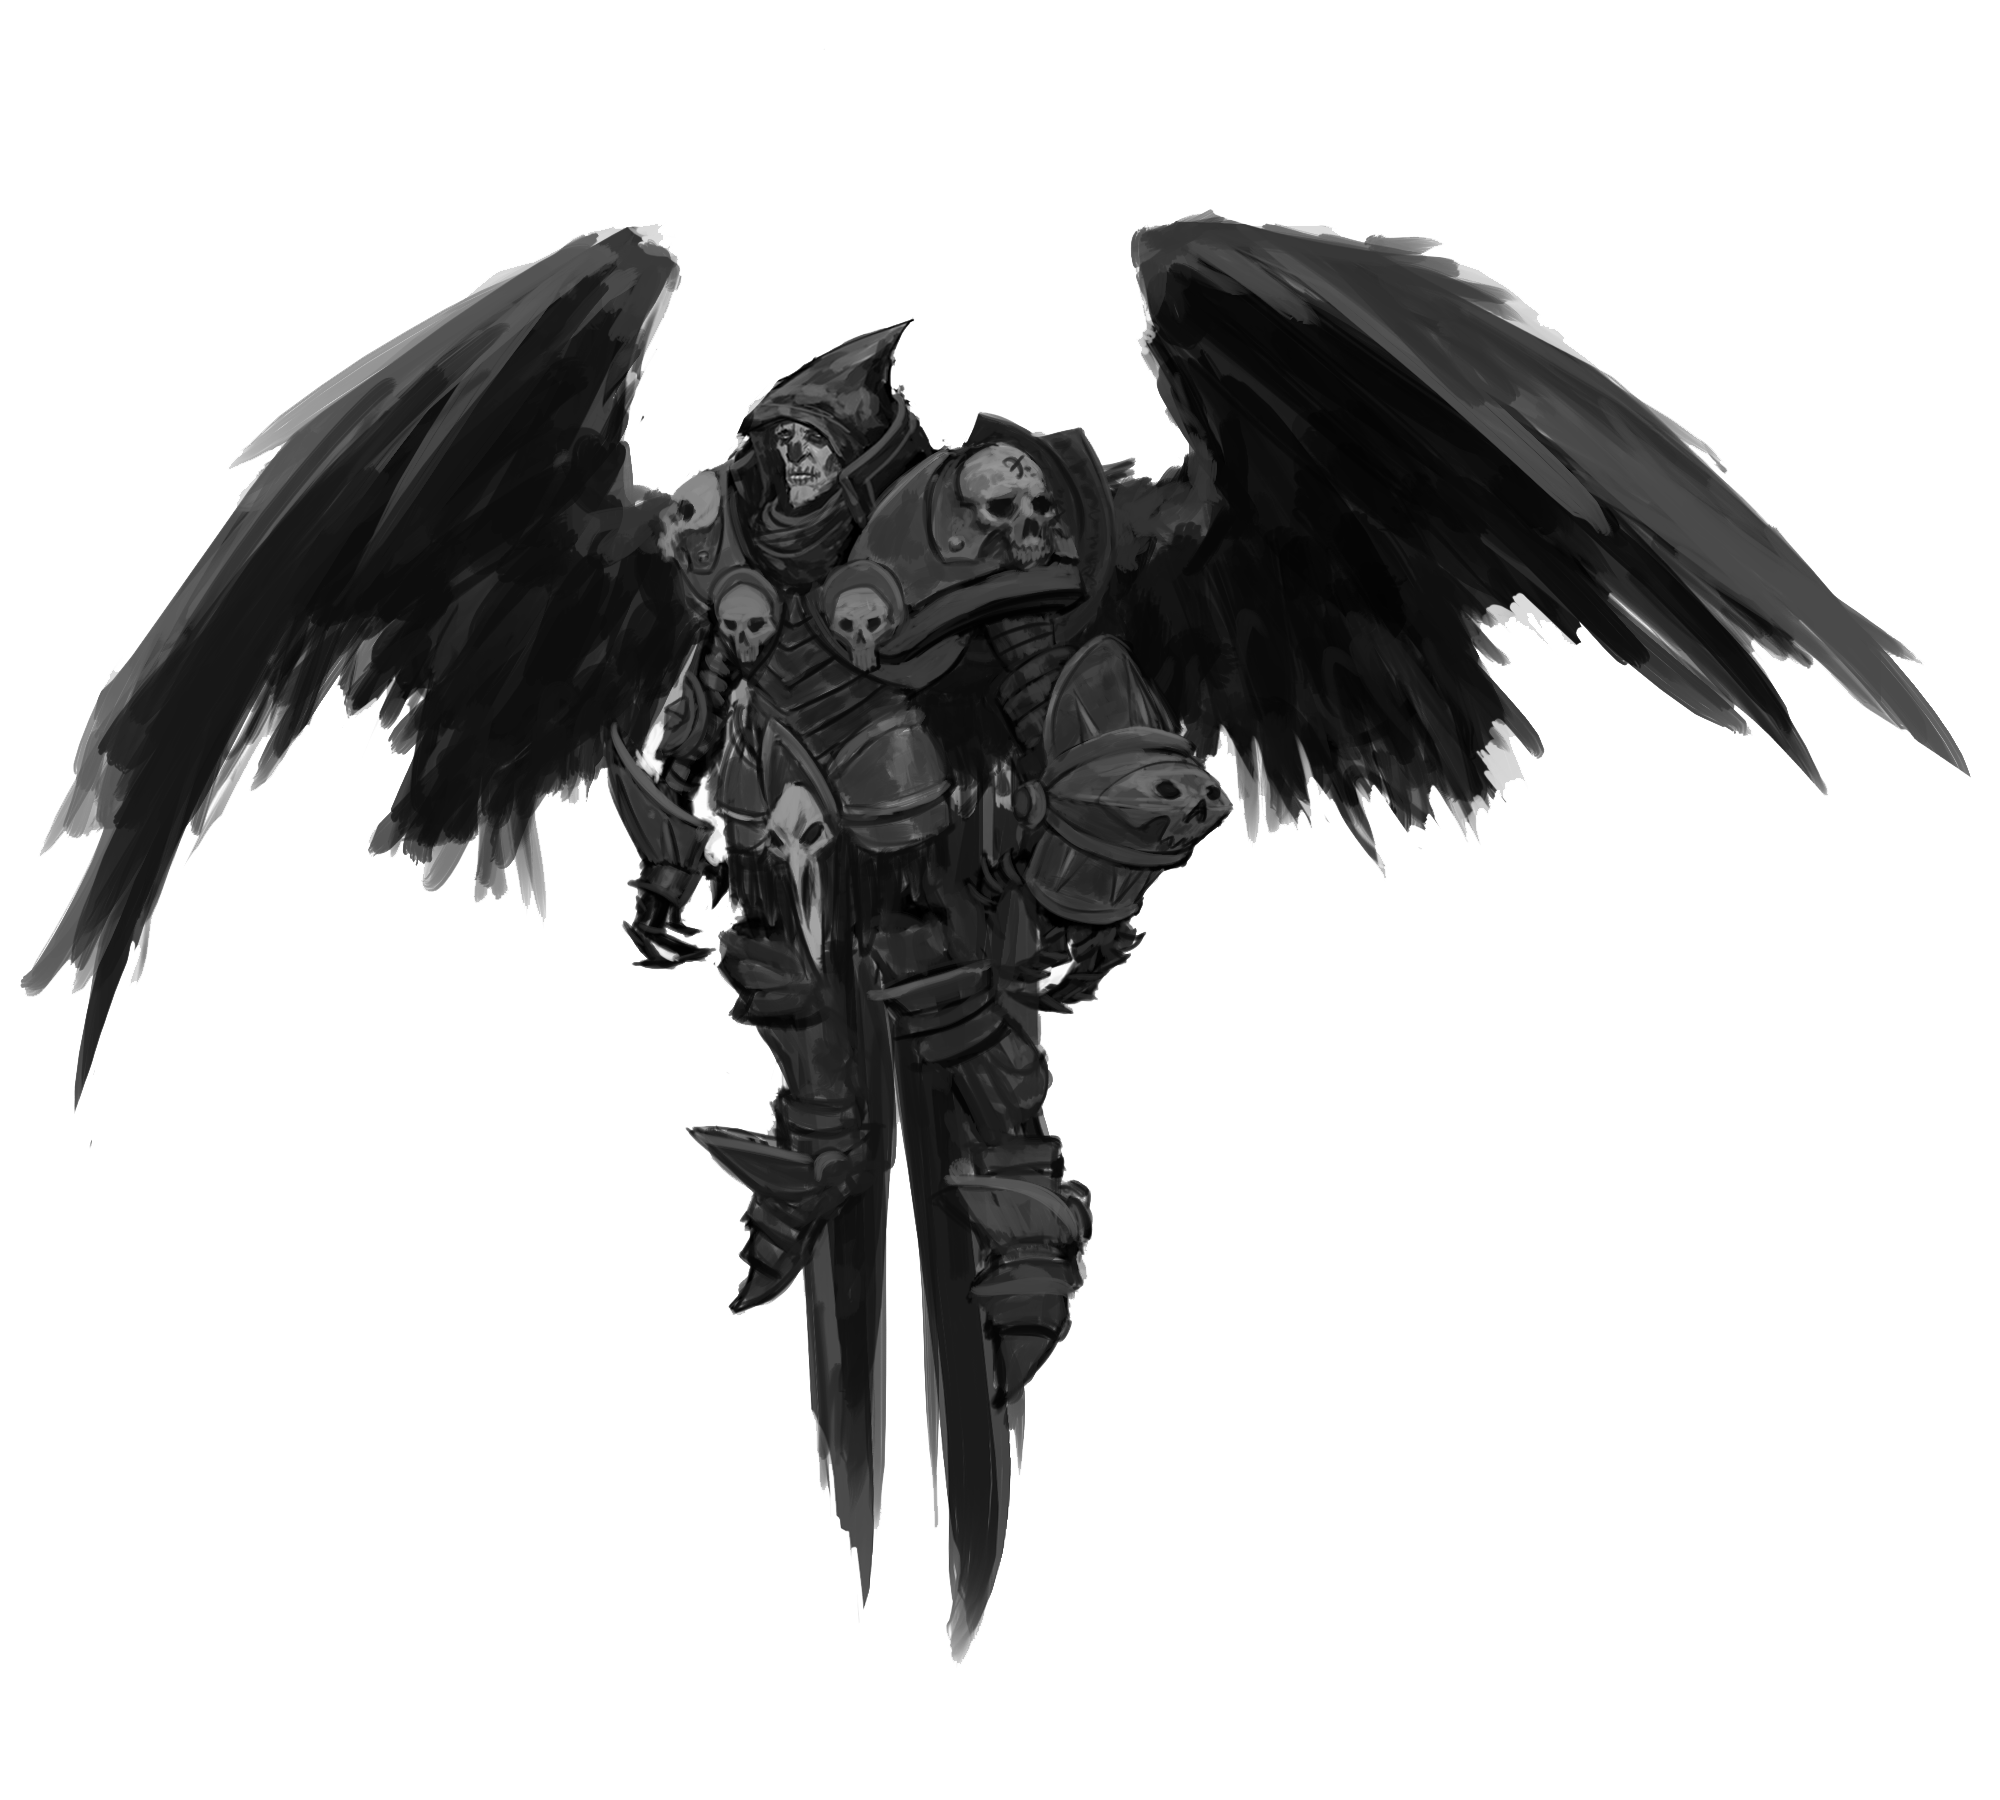 Filename: black_angel_wings_b